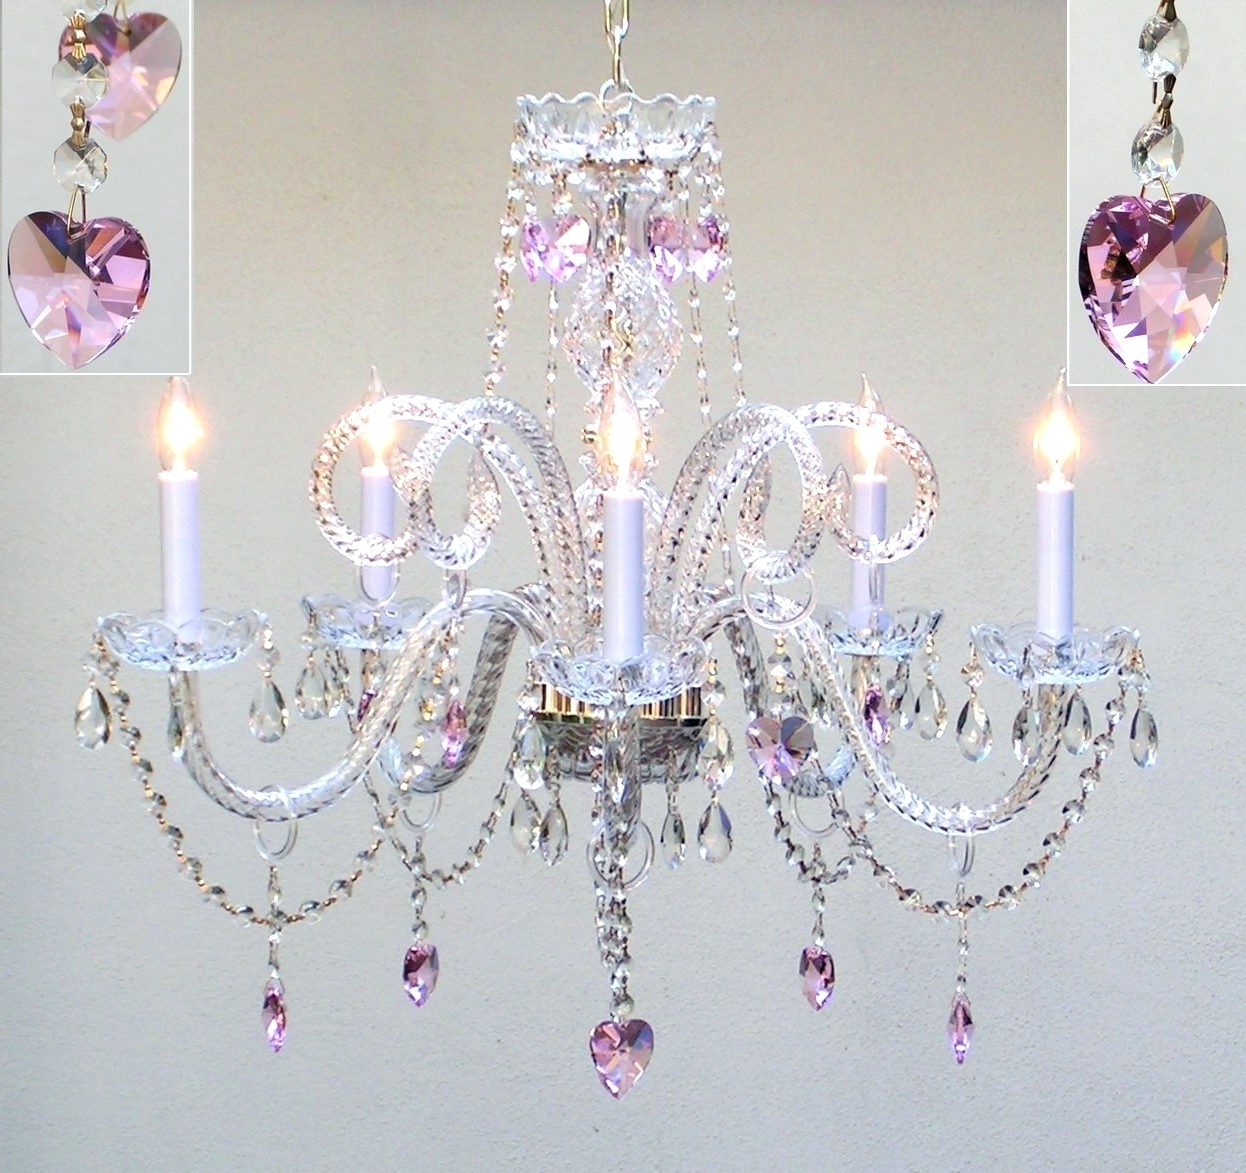 Current Light : Lamp Create An Adorable Room For Your Gallery With For Crystal Chandeliers For Baby Girl Room (View 7 of 15)